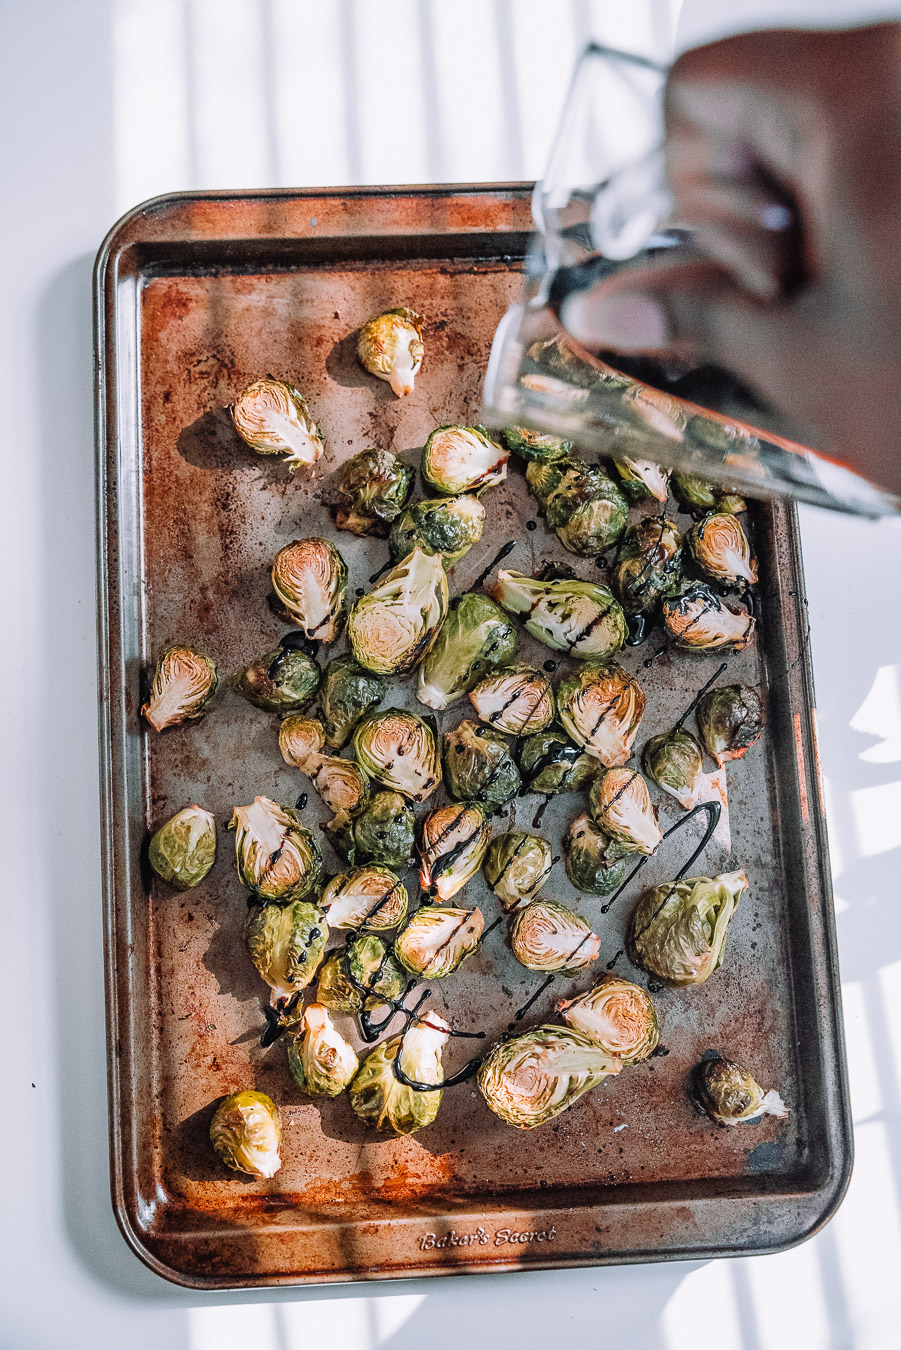 Roasting pan with Brussels Sprouts and balsamic glaze drizzled on top.